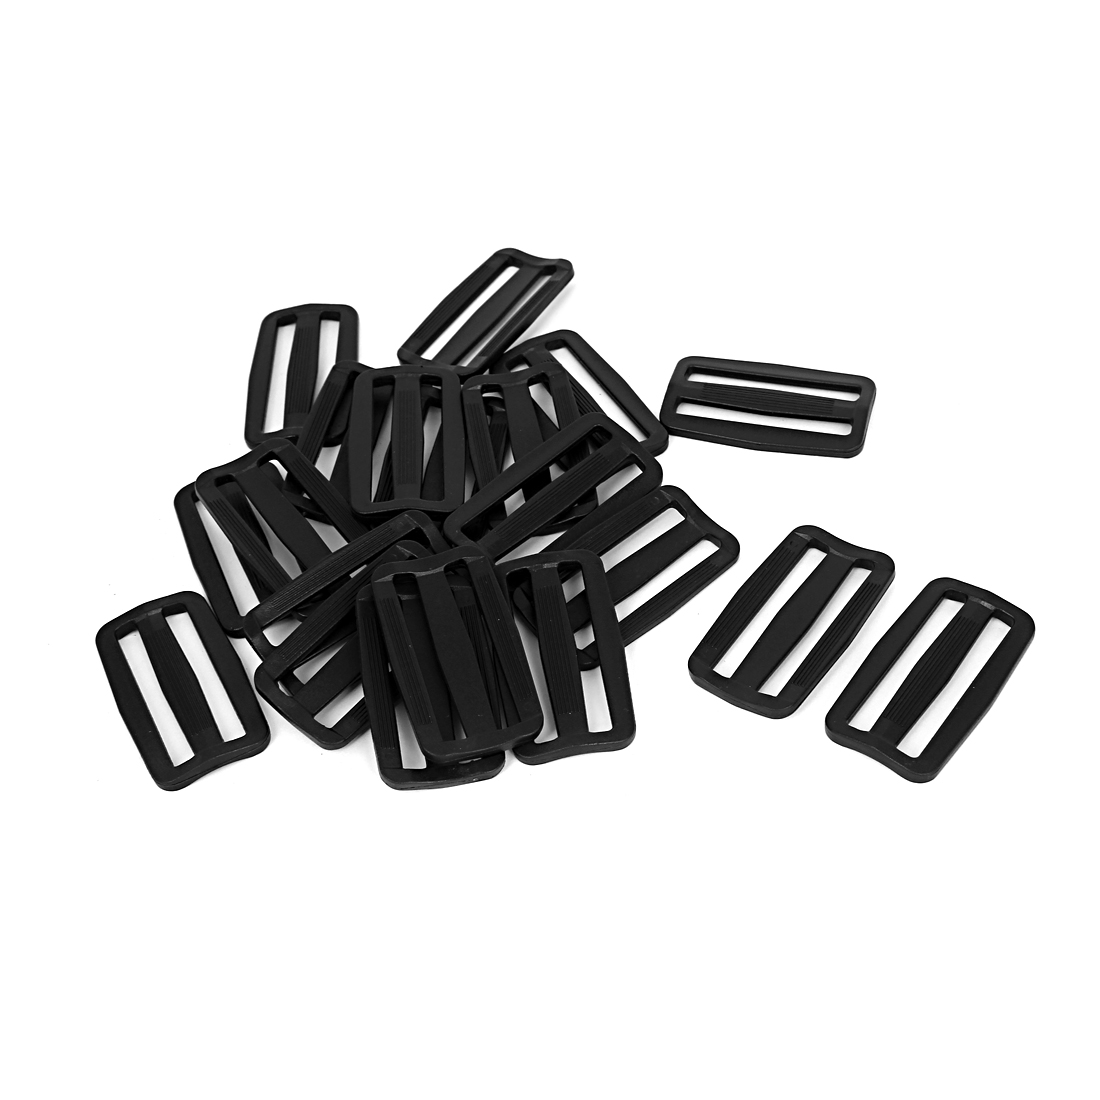 20 Pcs Black Hard Plastic Slide Rectangle Buckle Luggage Bag Replacement 5.0CM